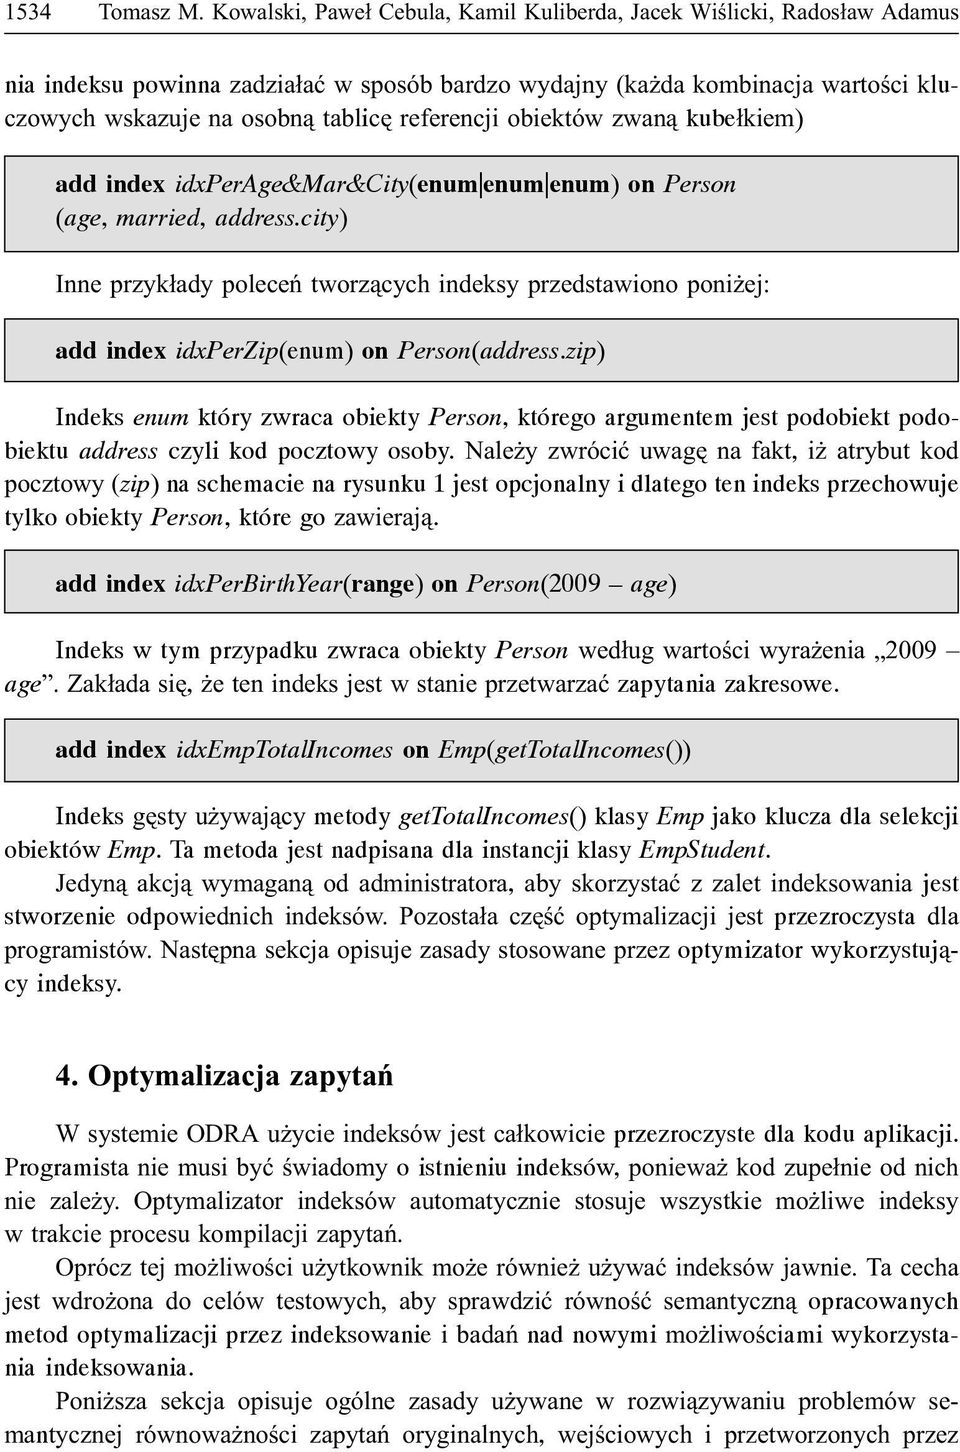 referencji obiektów zwan¹ kube³kiem) add index idxperage&mar&city(enum enum enum) on Person (age, married, address.